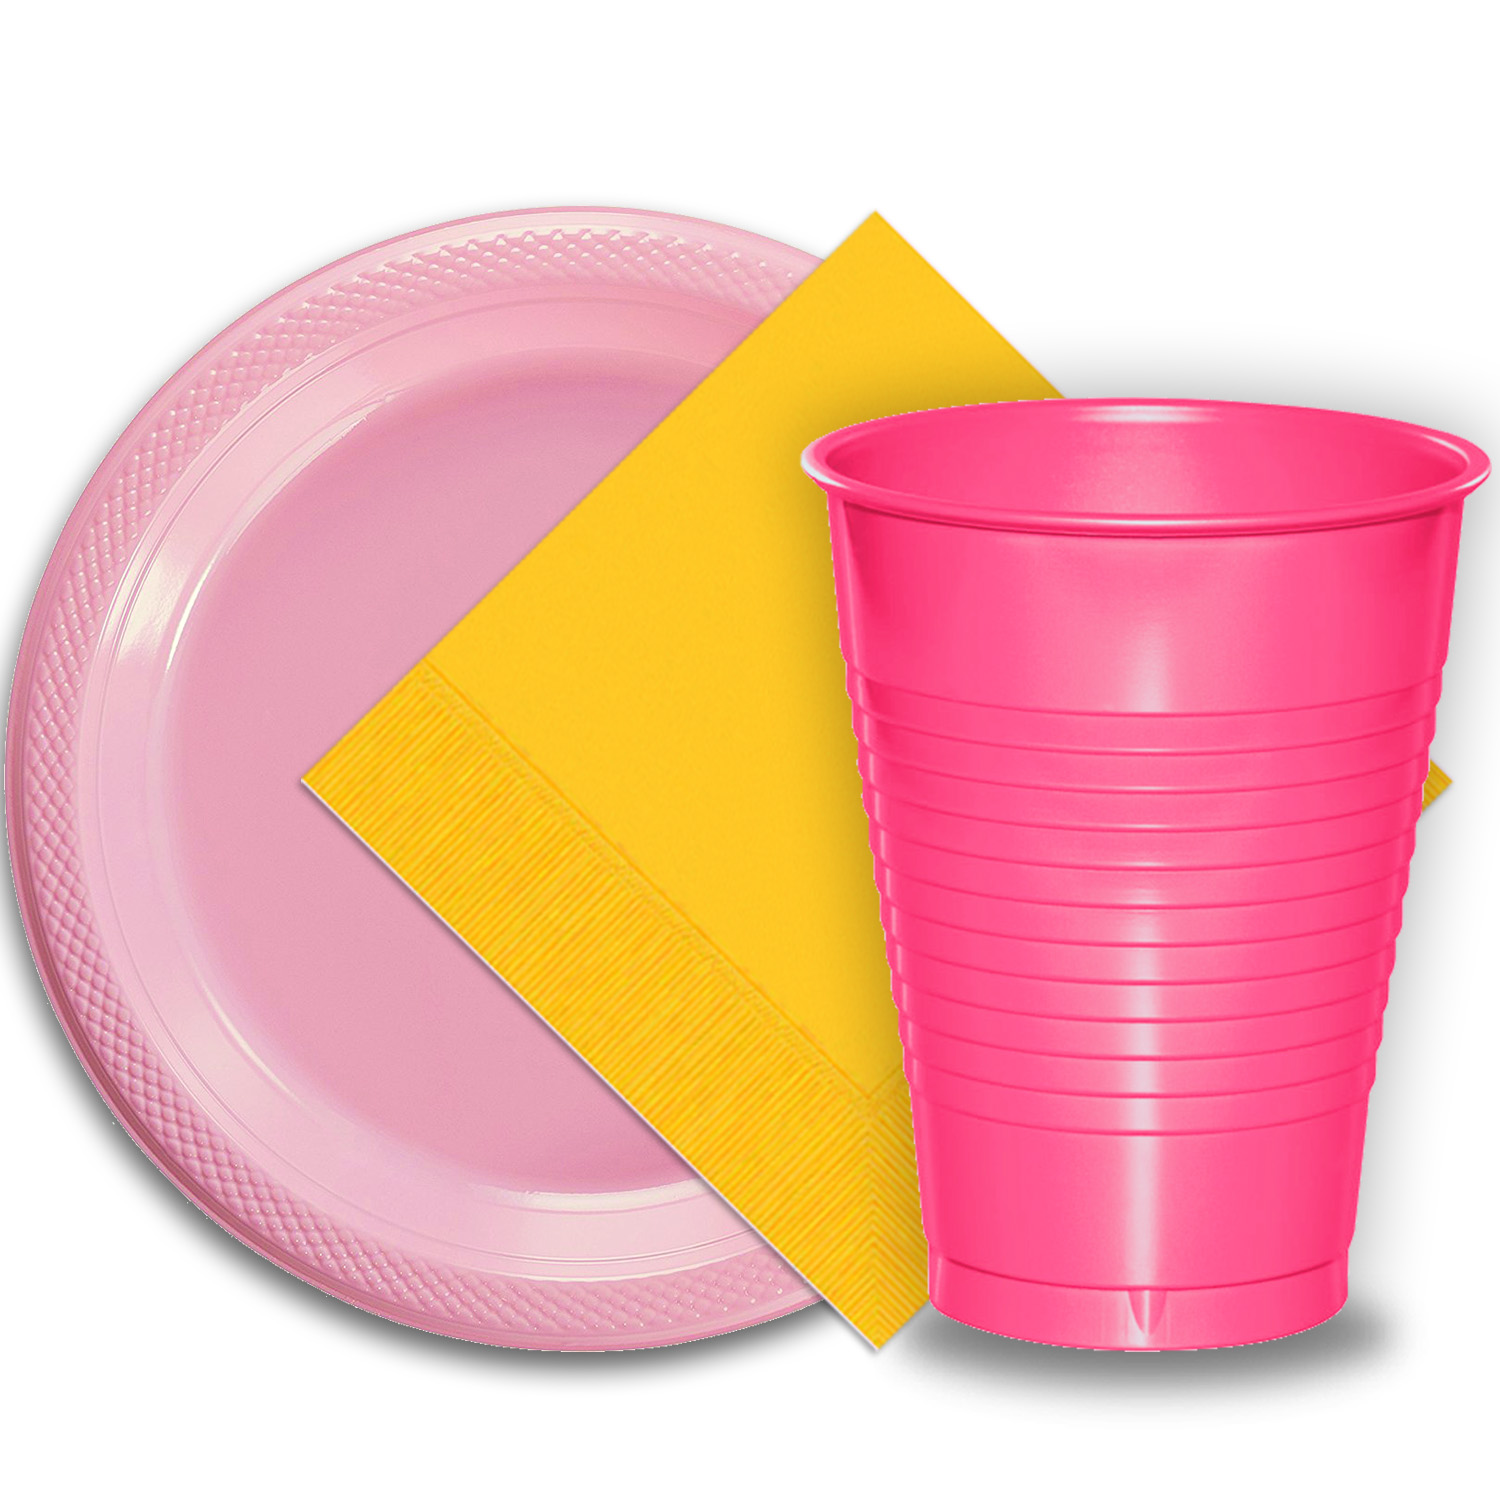 "50 Pink Plastic Plates (9""), 50 Hot Pink Plastic Cups (12 oz.), and 50 Yellow Paper Napkins, Dazzelling Colored Disposable Party Supplies Tableware Set for Fifty Guests."